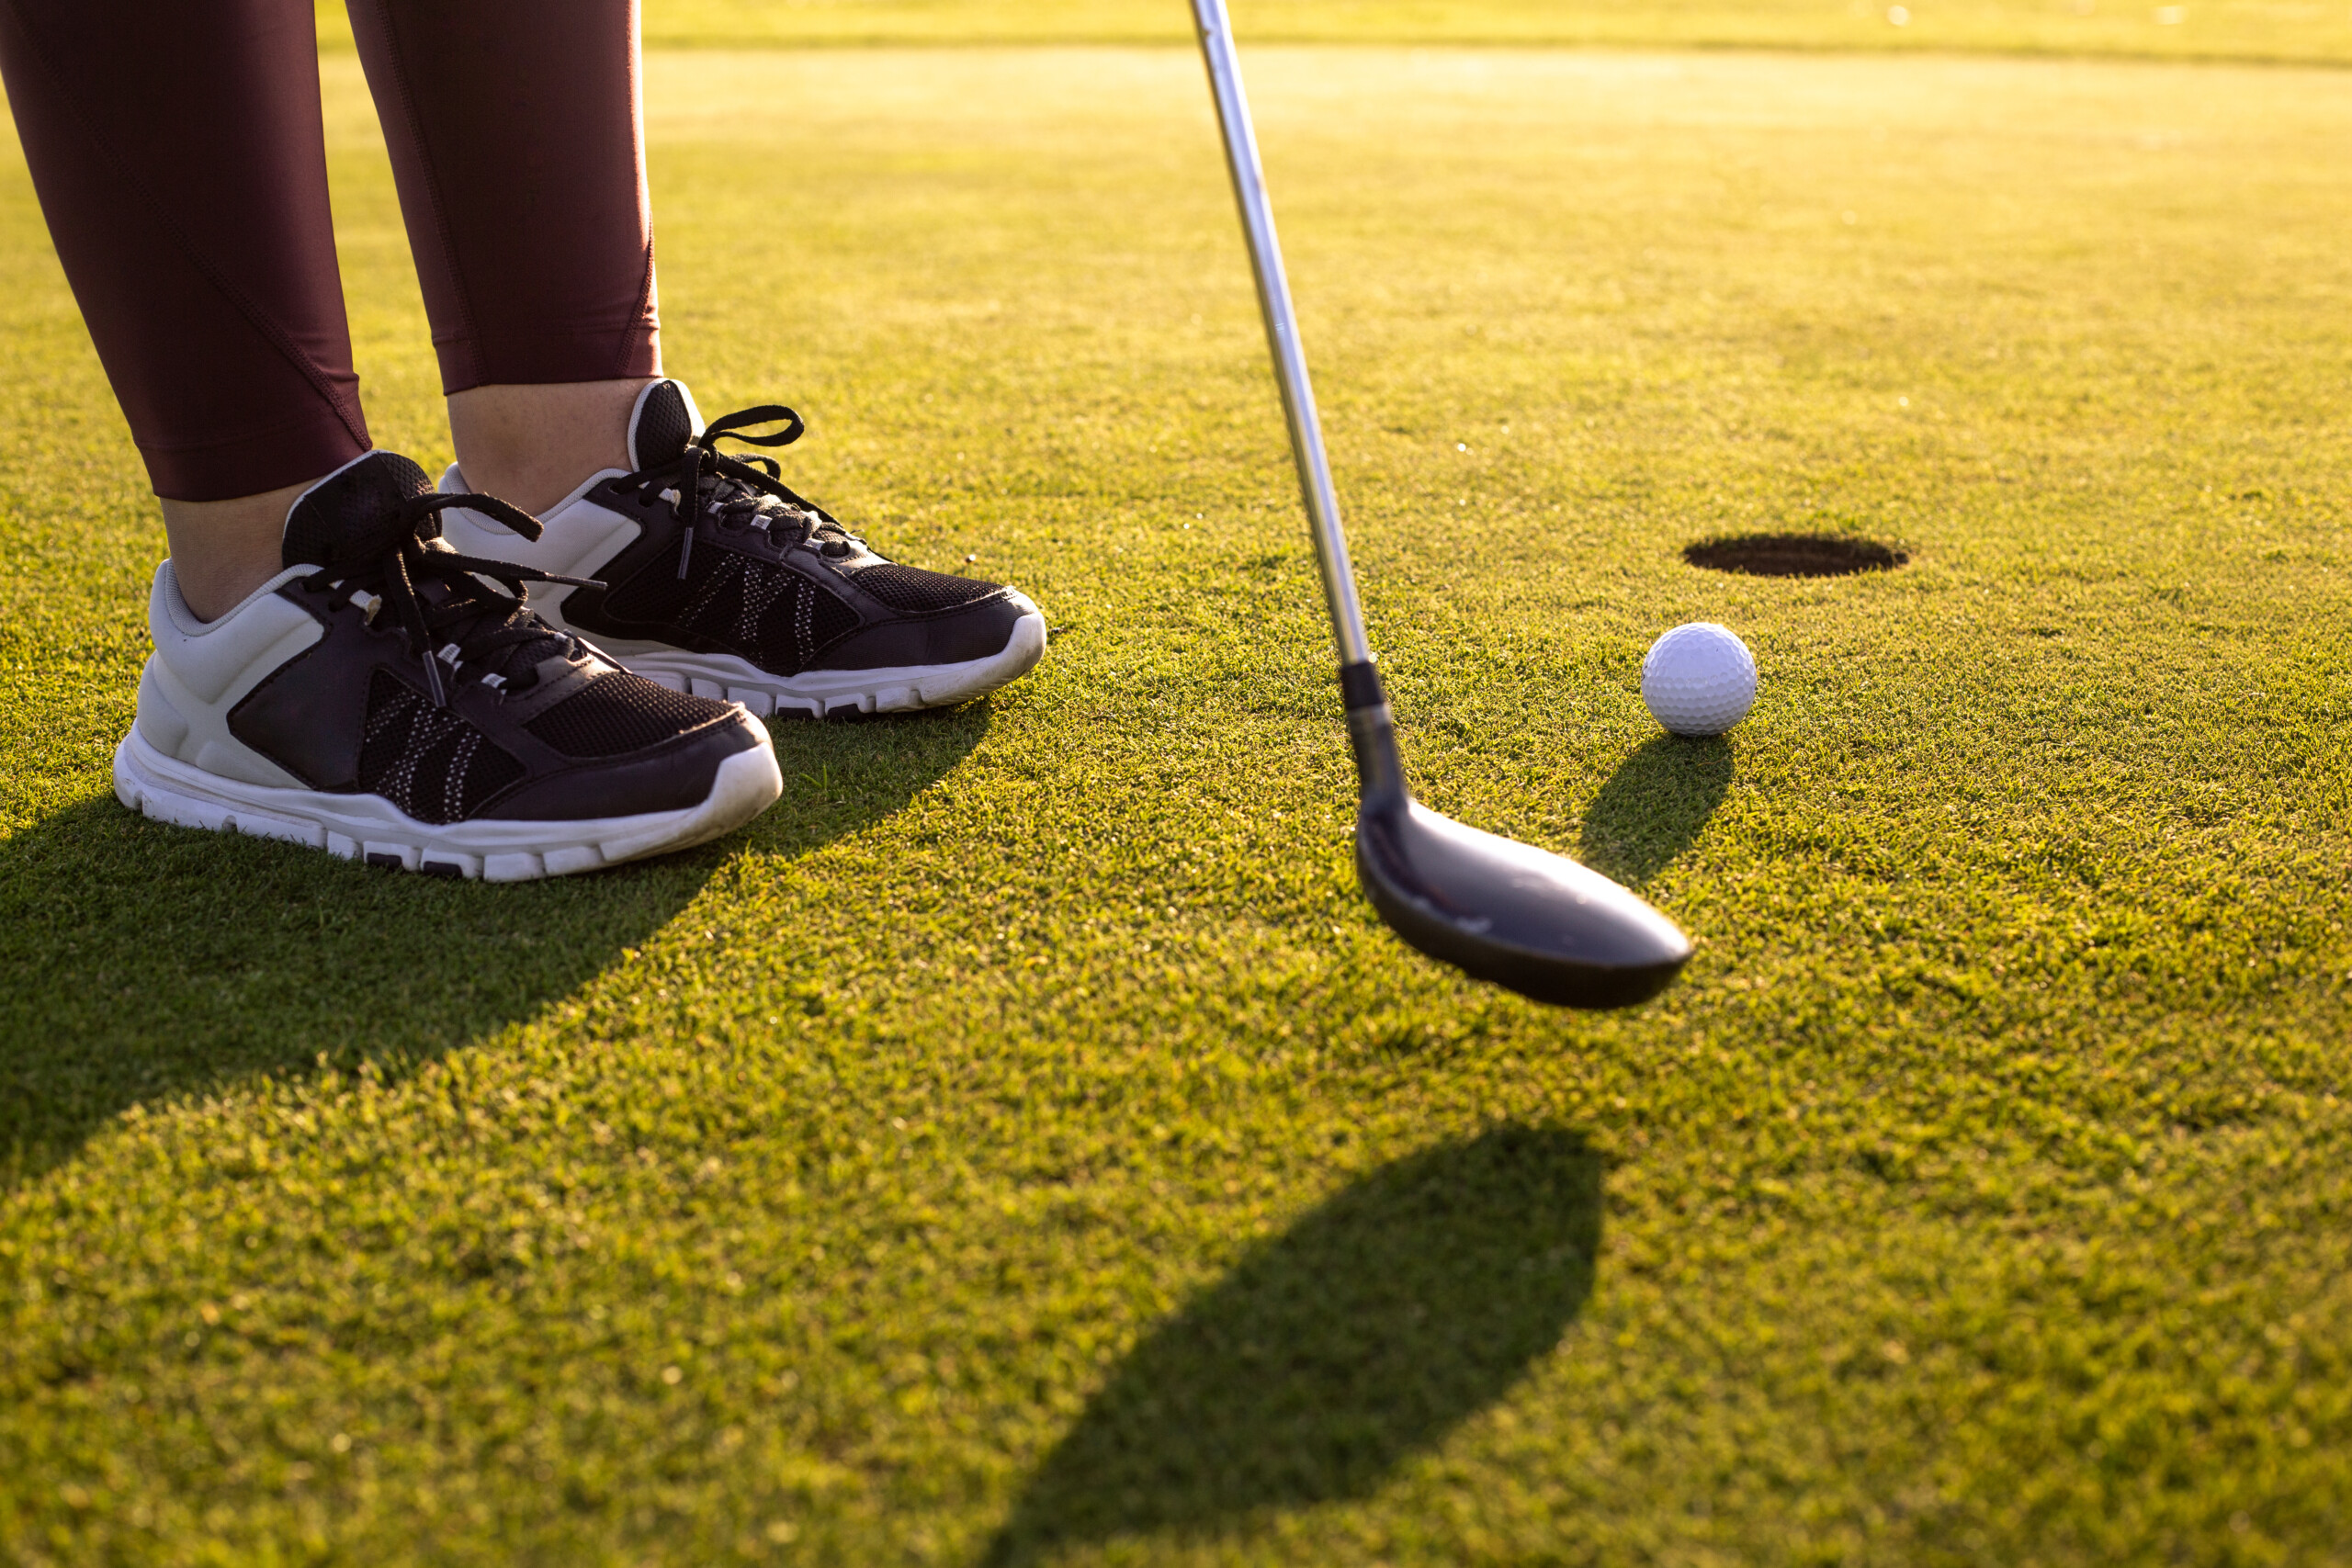 Professional woman golf player playing golf competition / match, professional sport concept